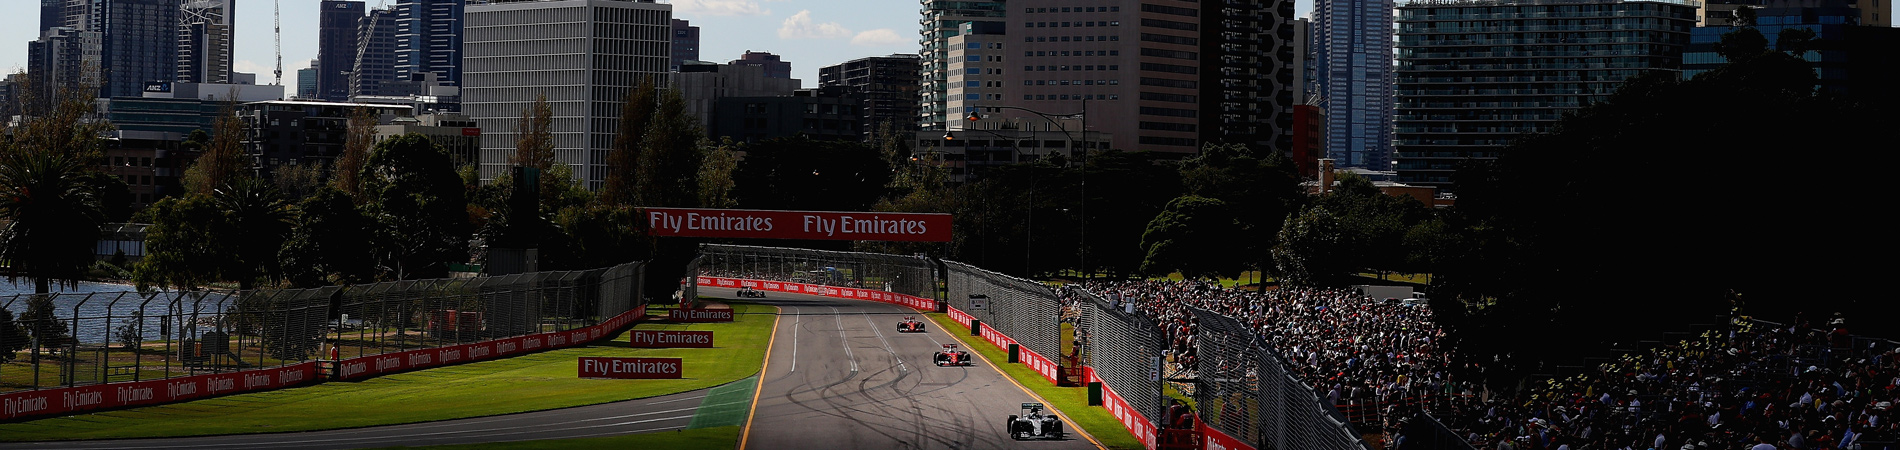 F1 Circuits And Calendar For The 2019 Gp Season Bwin Your Circuit Should Be Laid Out In A Similar Way To Compared Other Street Track Is Quite Smooth But It Has Virtually No Grip Until Lot Of Rubber Down During Weekend